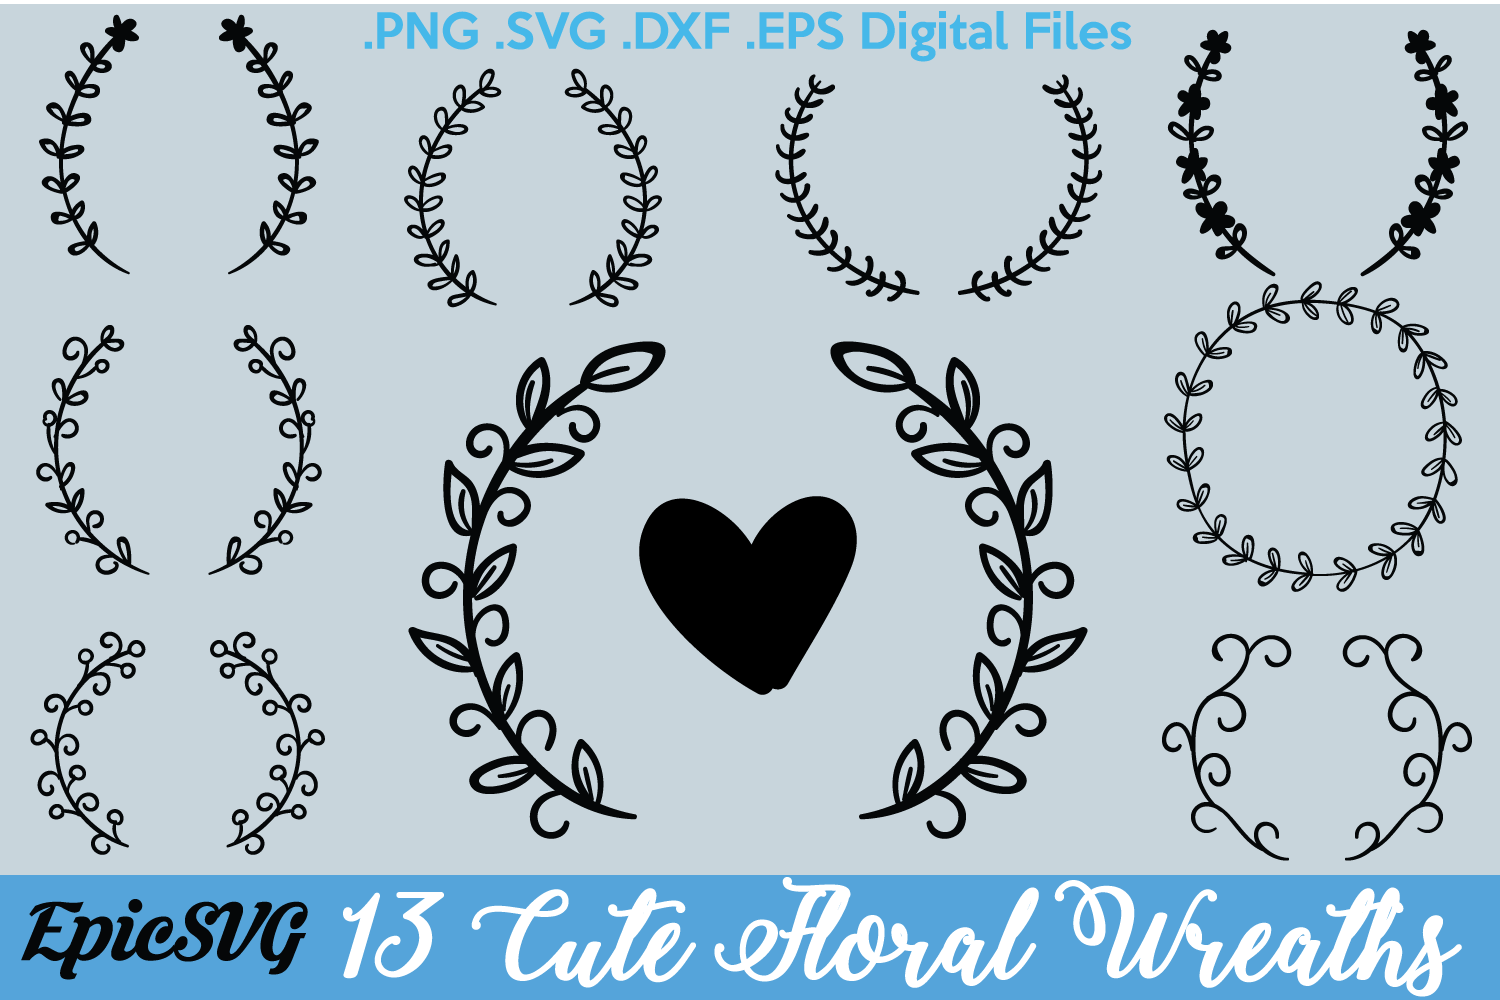 13 Floral Wreath Designs | .SVG .DXF .EPS | Wedding Gift Frame Cutting Digital Files example image 1